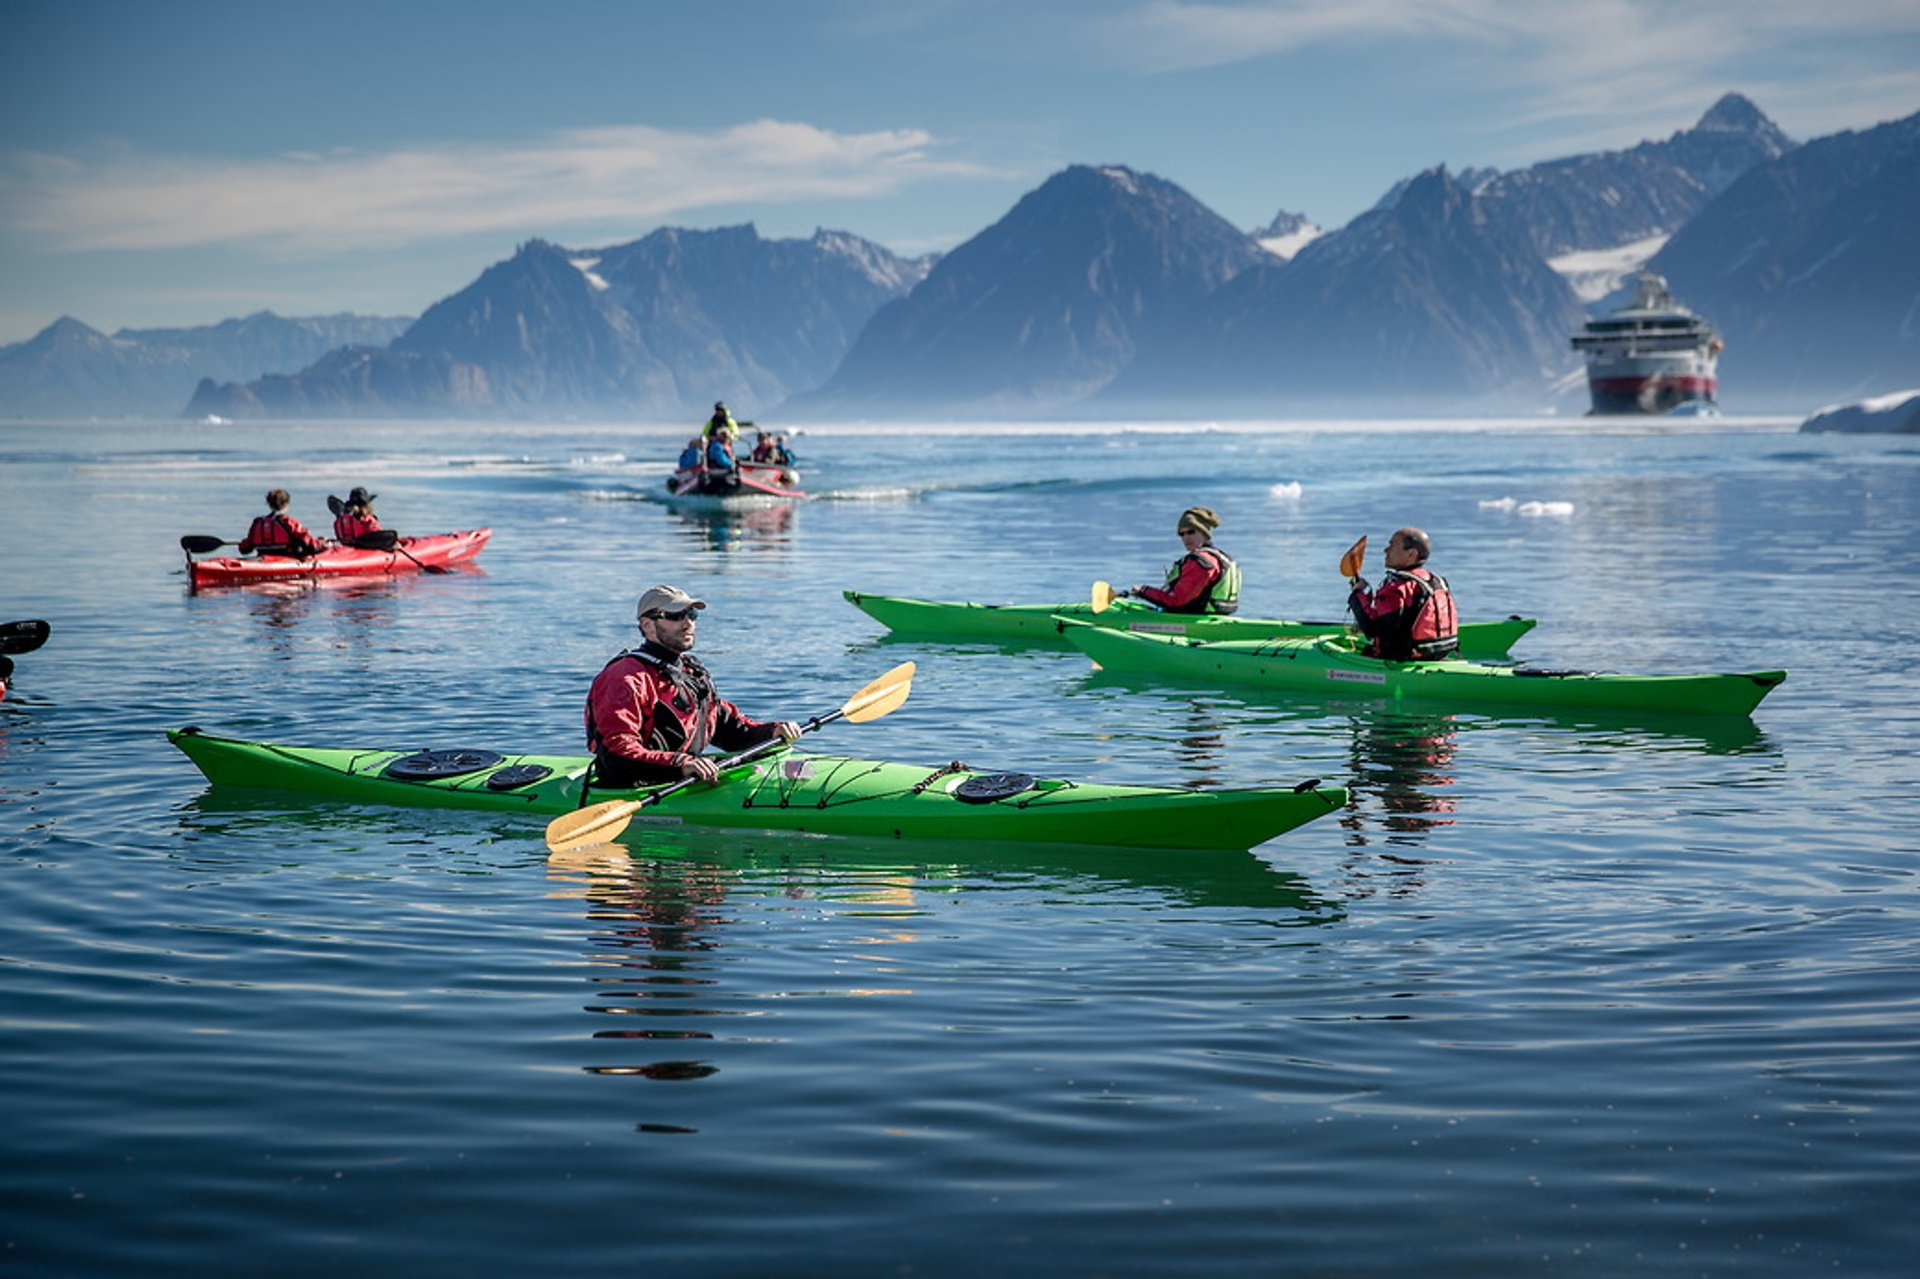 Kayaking in Greenland 2020 - Best Time